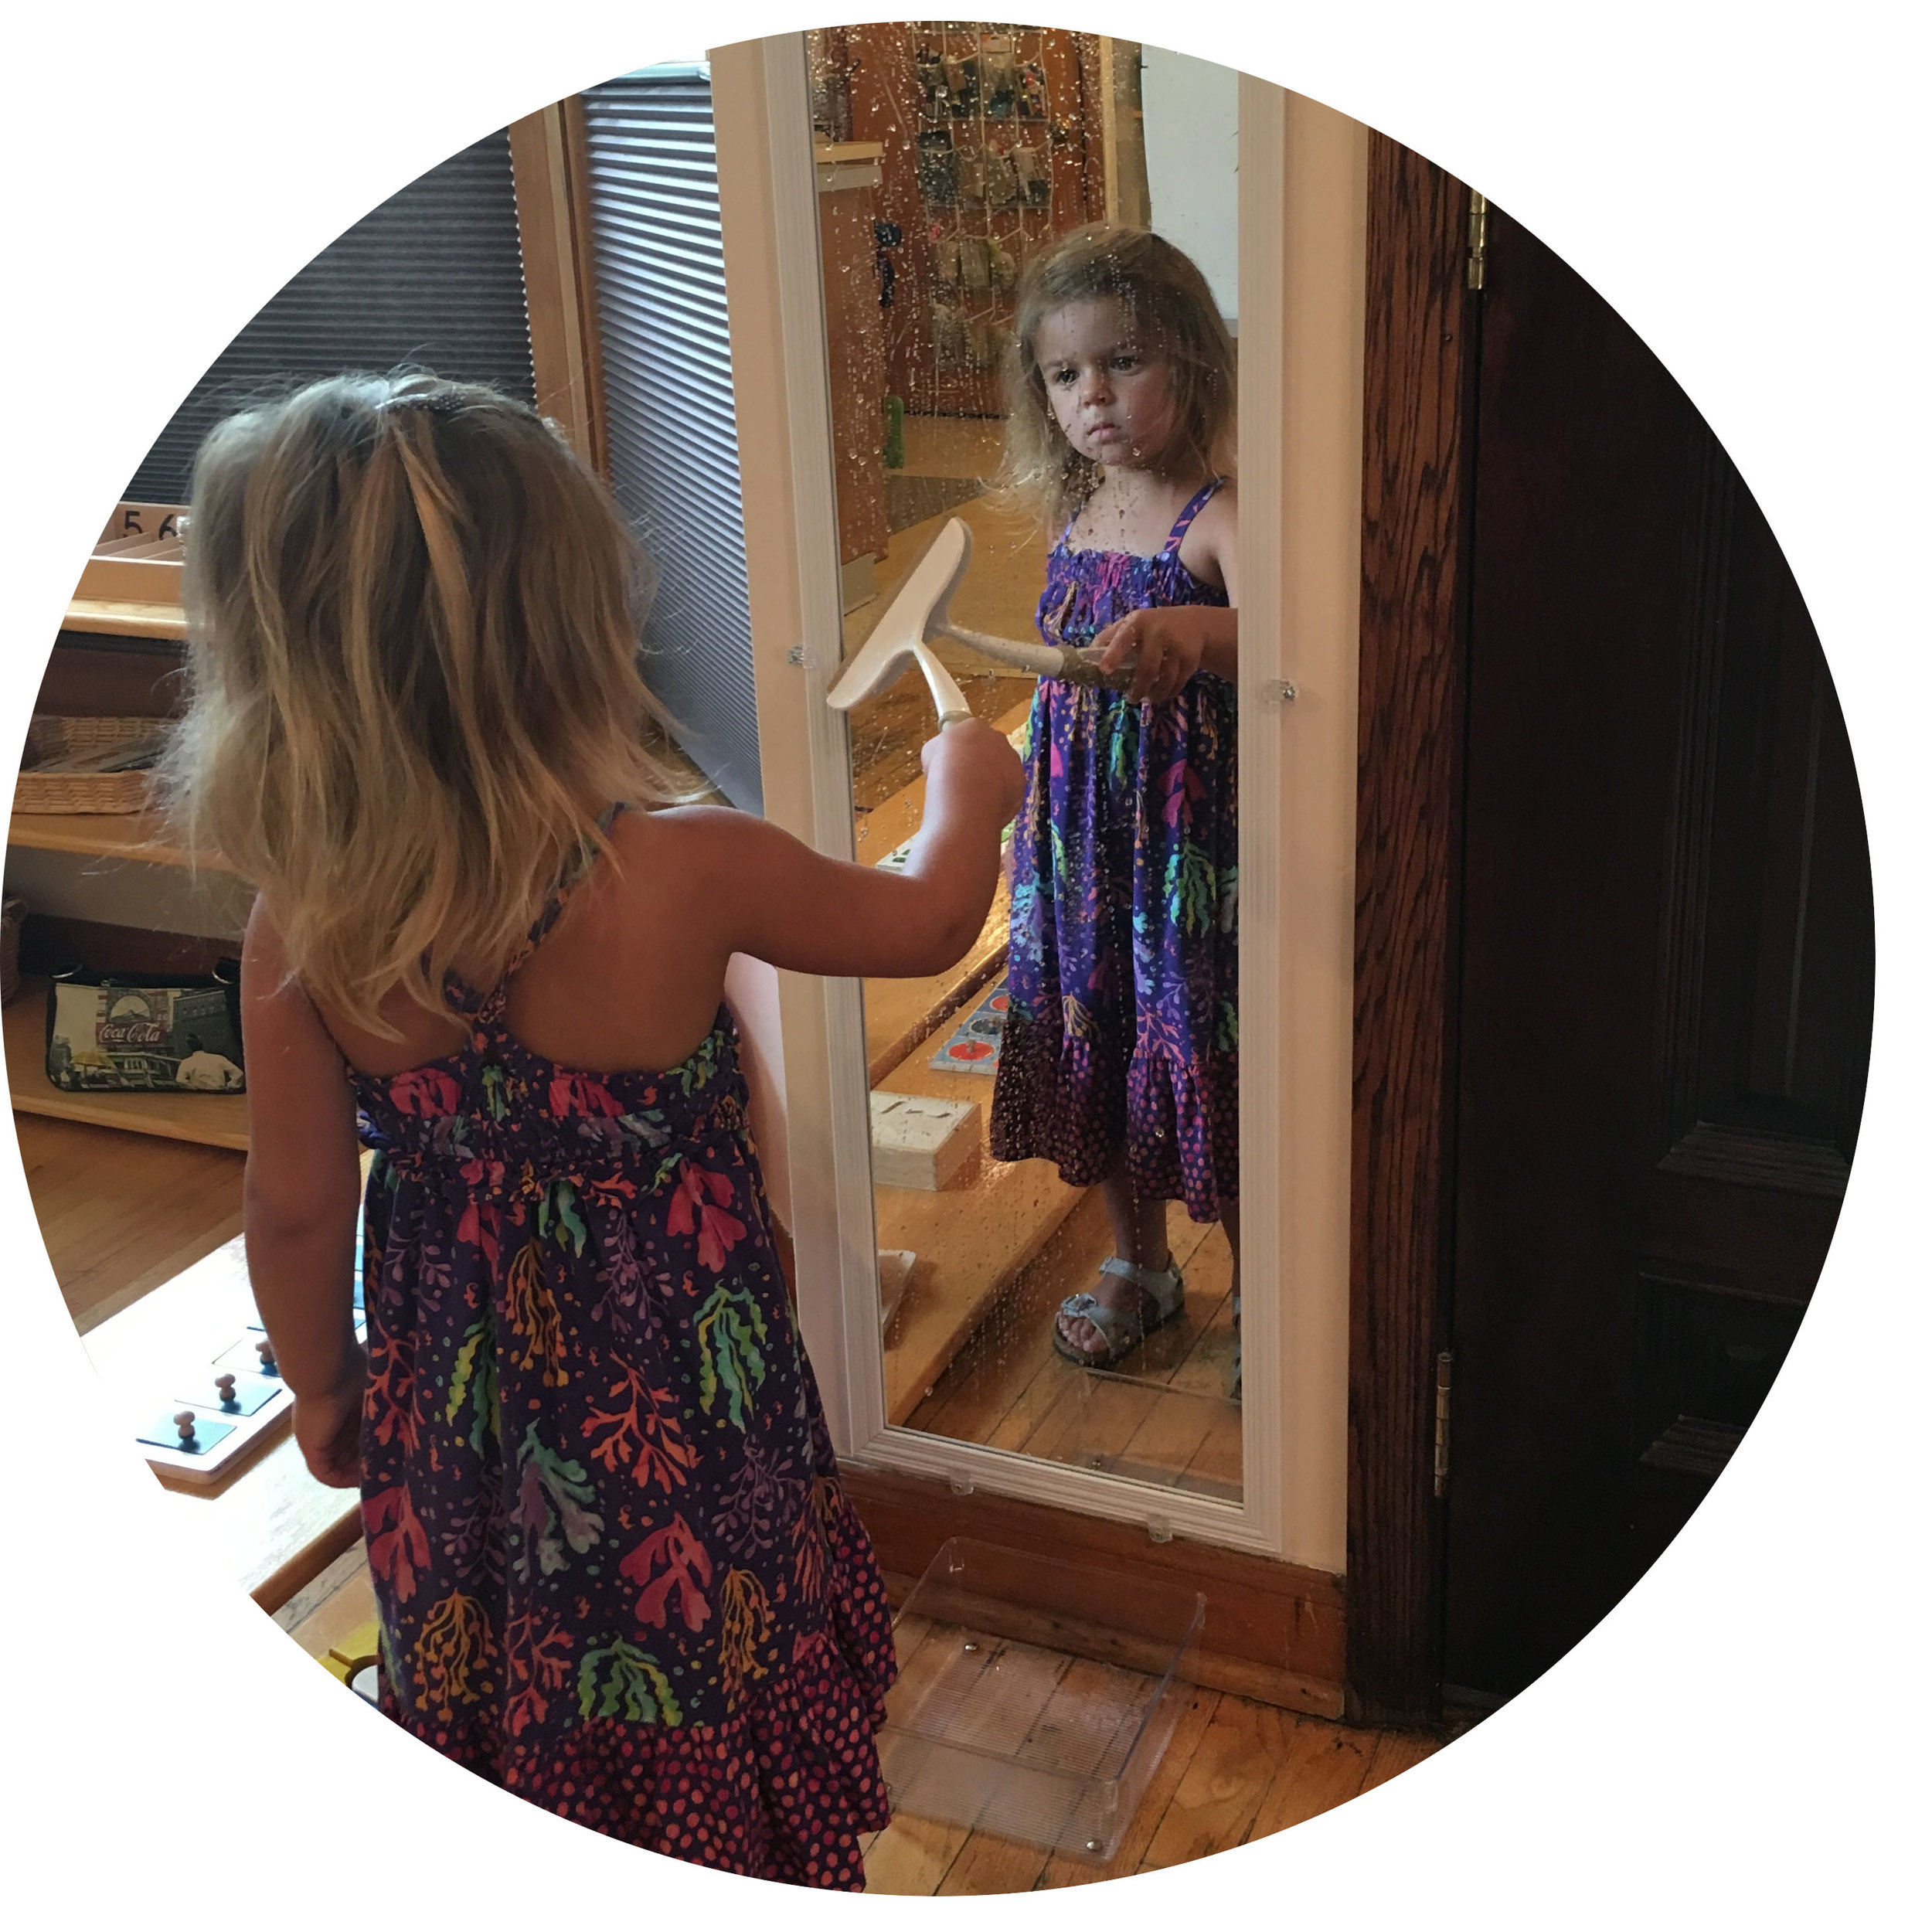 In this seemingly simple activity, children have the opportunity to learn about themselves in the mirror while also practicing a practical life skill to show care for the environment.